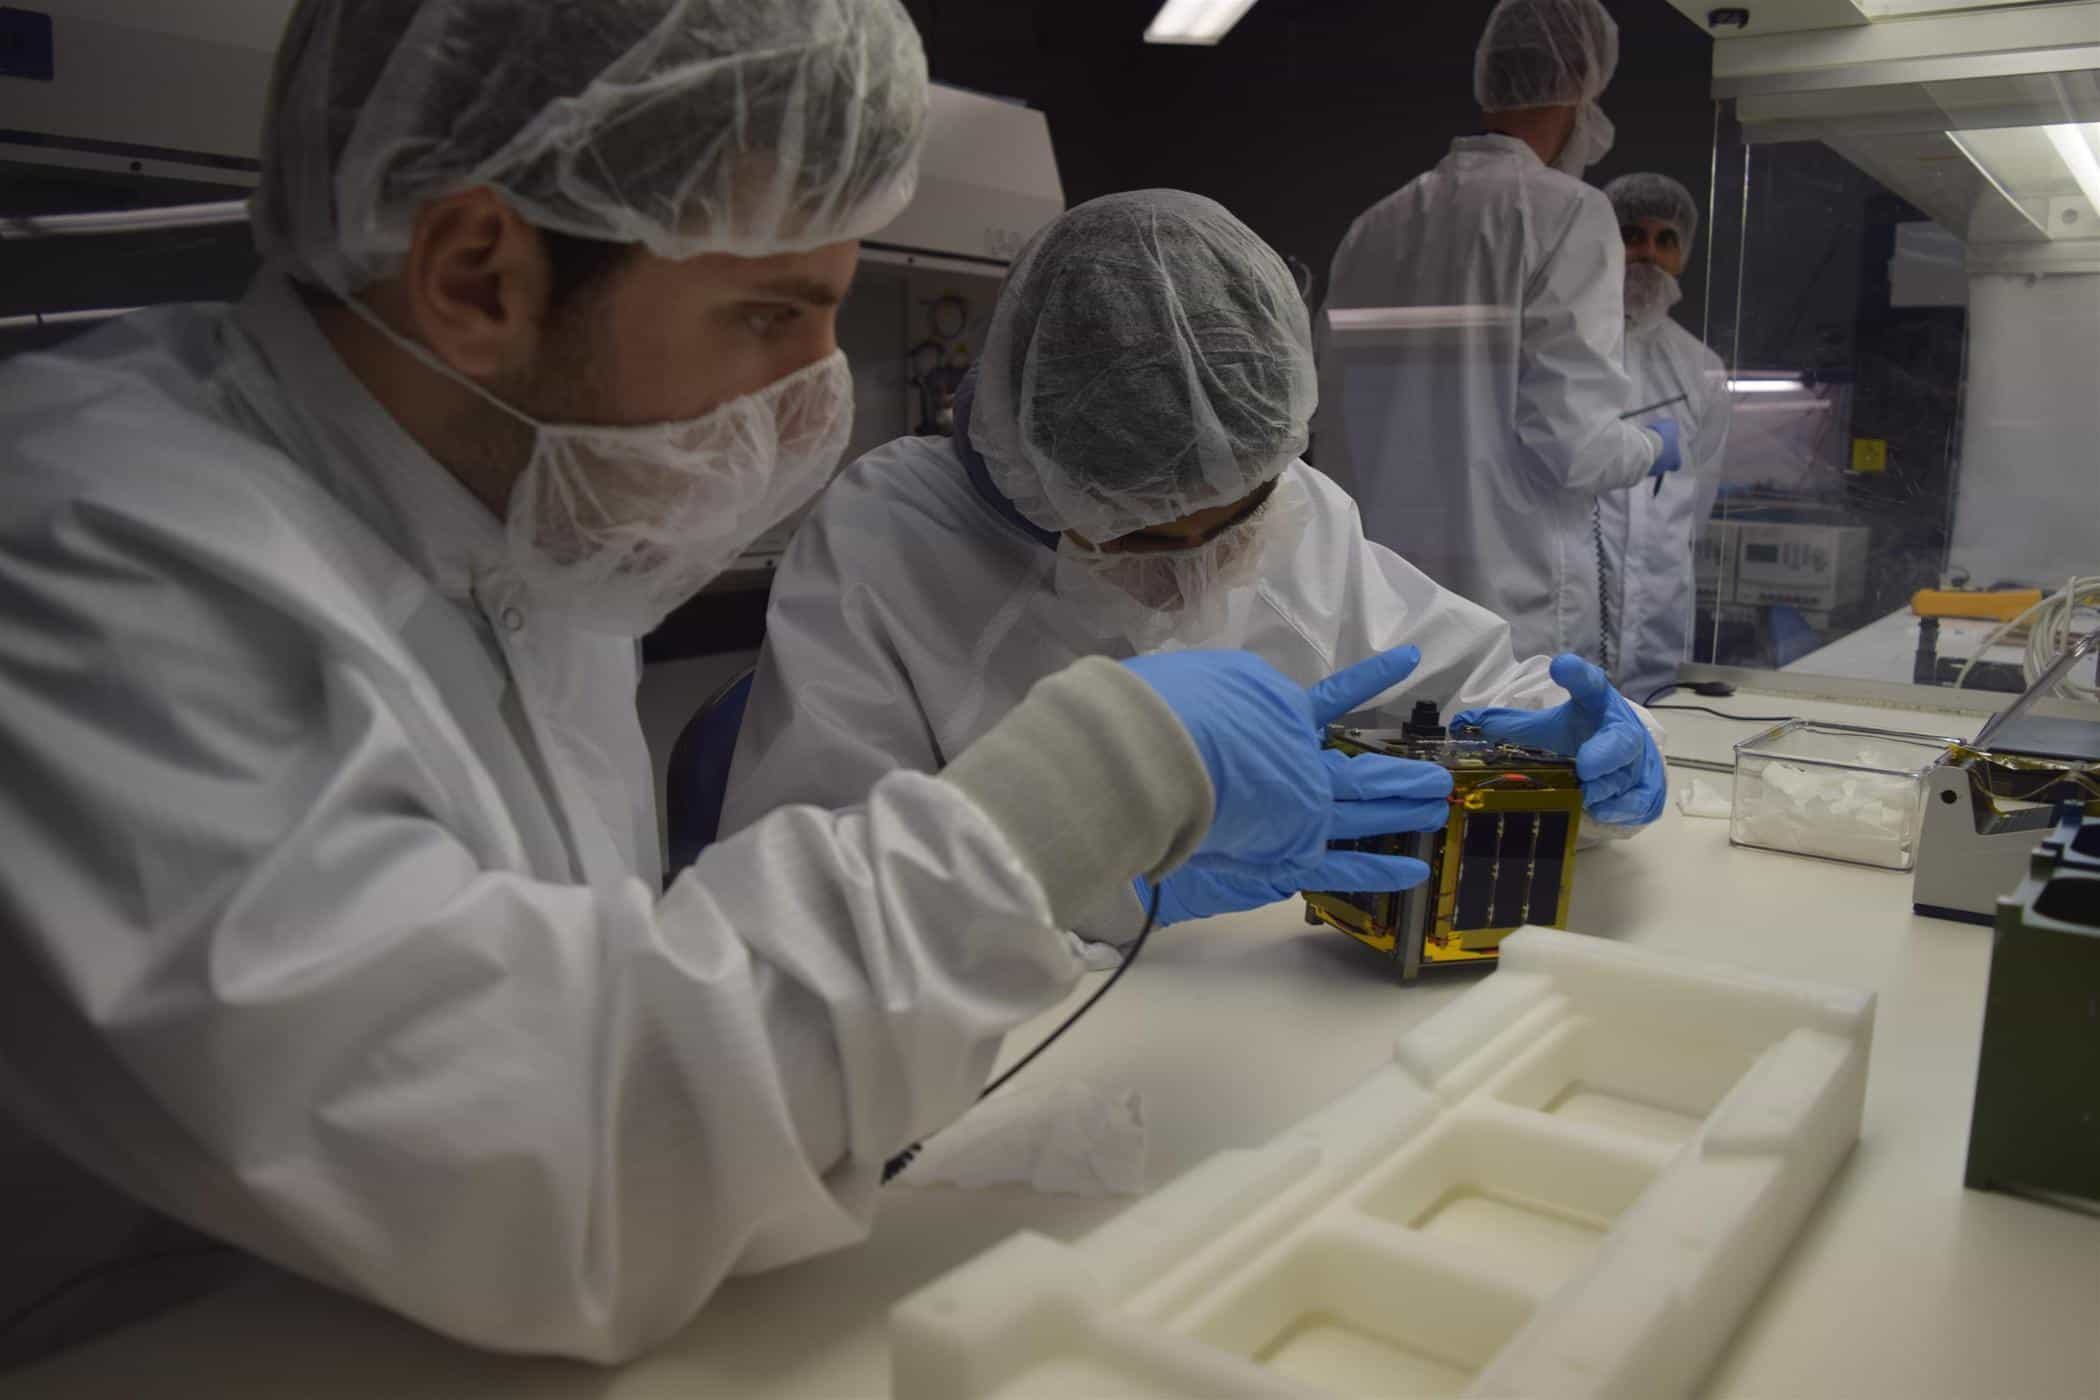 CUBESAT STUDENTS READY FOR LAUNCH